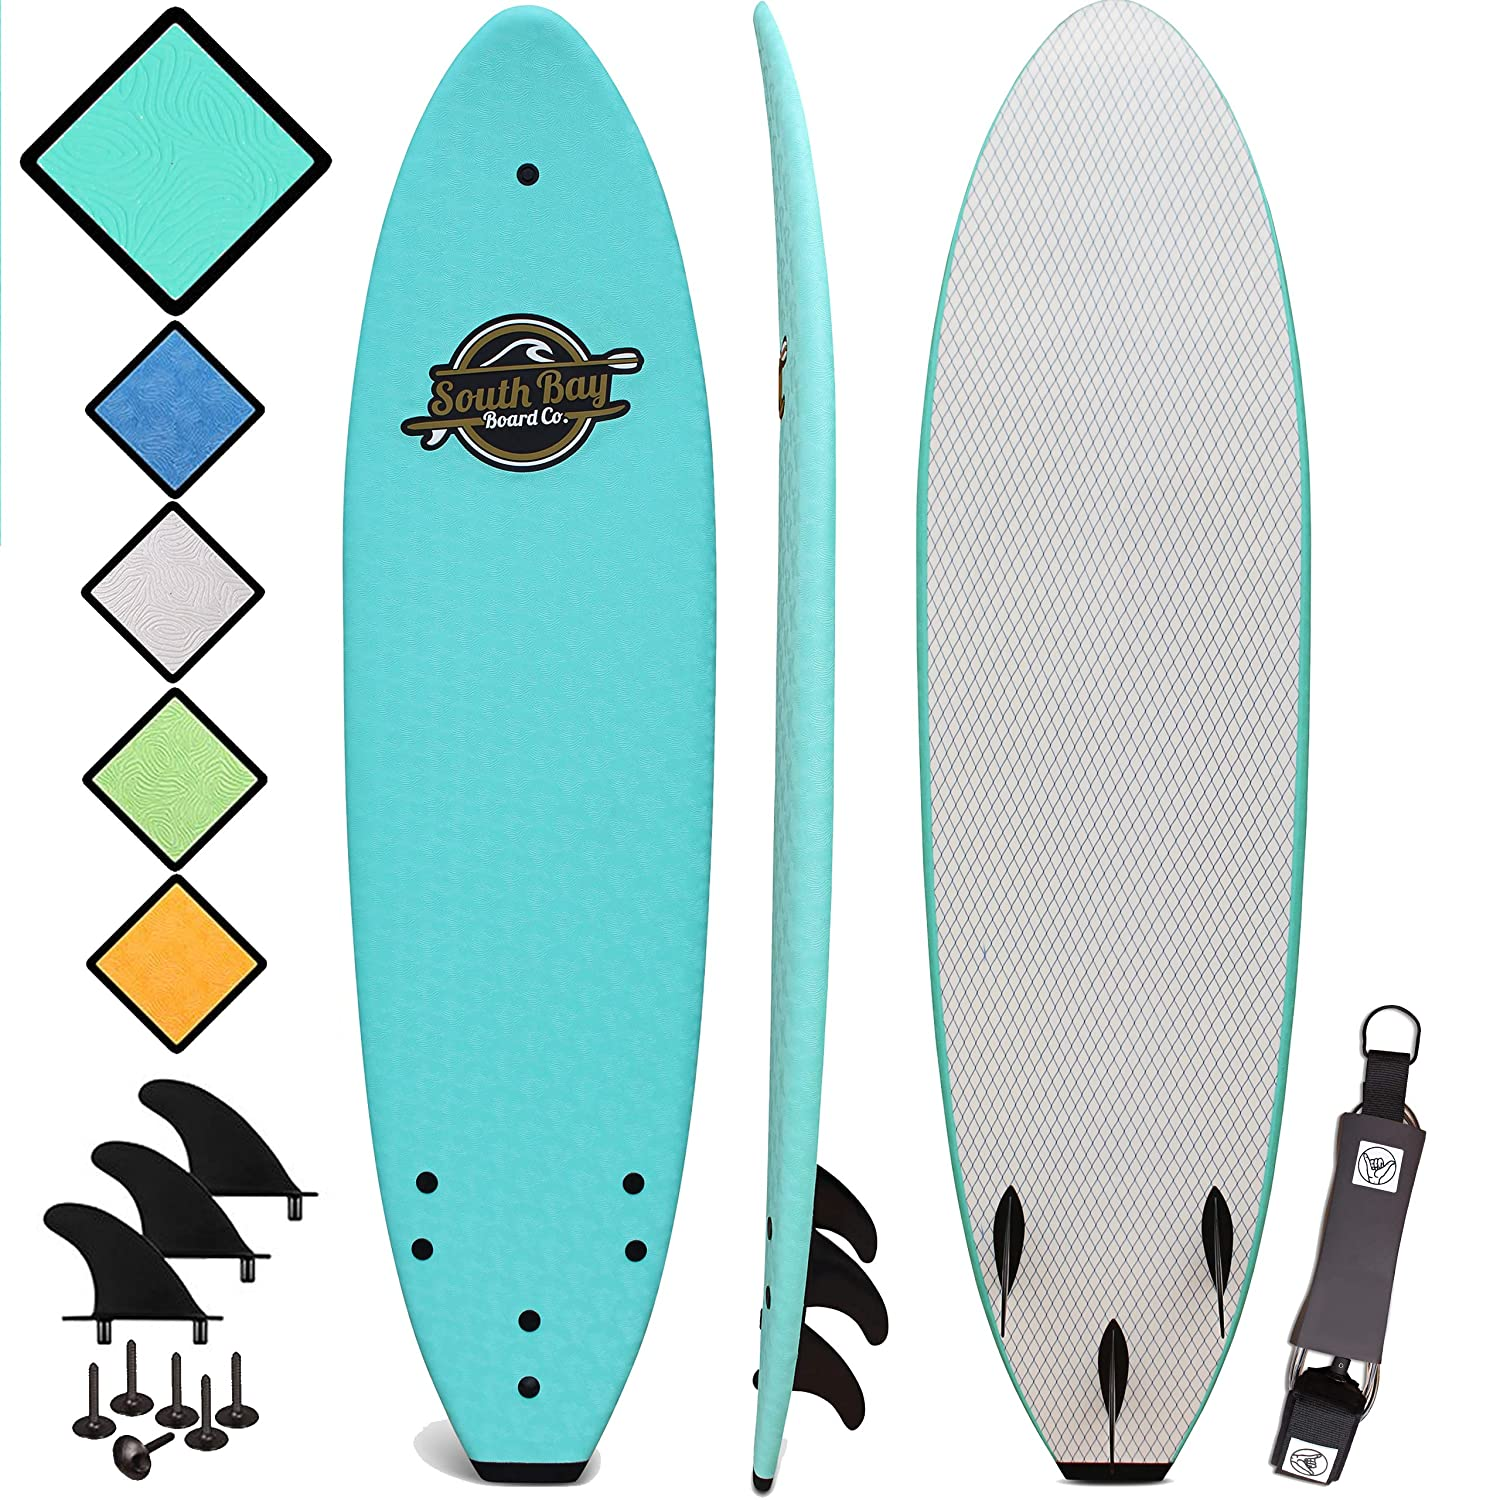 Soft Top Surfboard - Best Foam Surf Board for Beginners, Kids, and Adults - Soft Top Surfboards for Fun & Easy Surfing